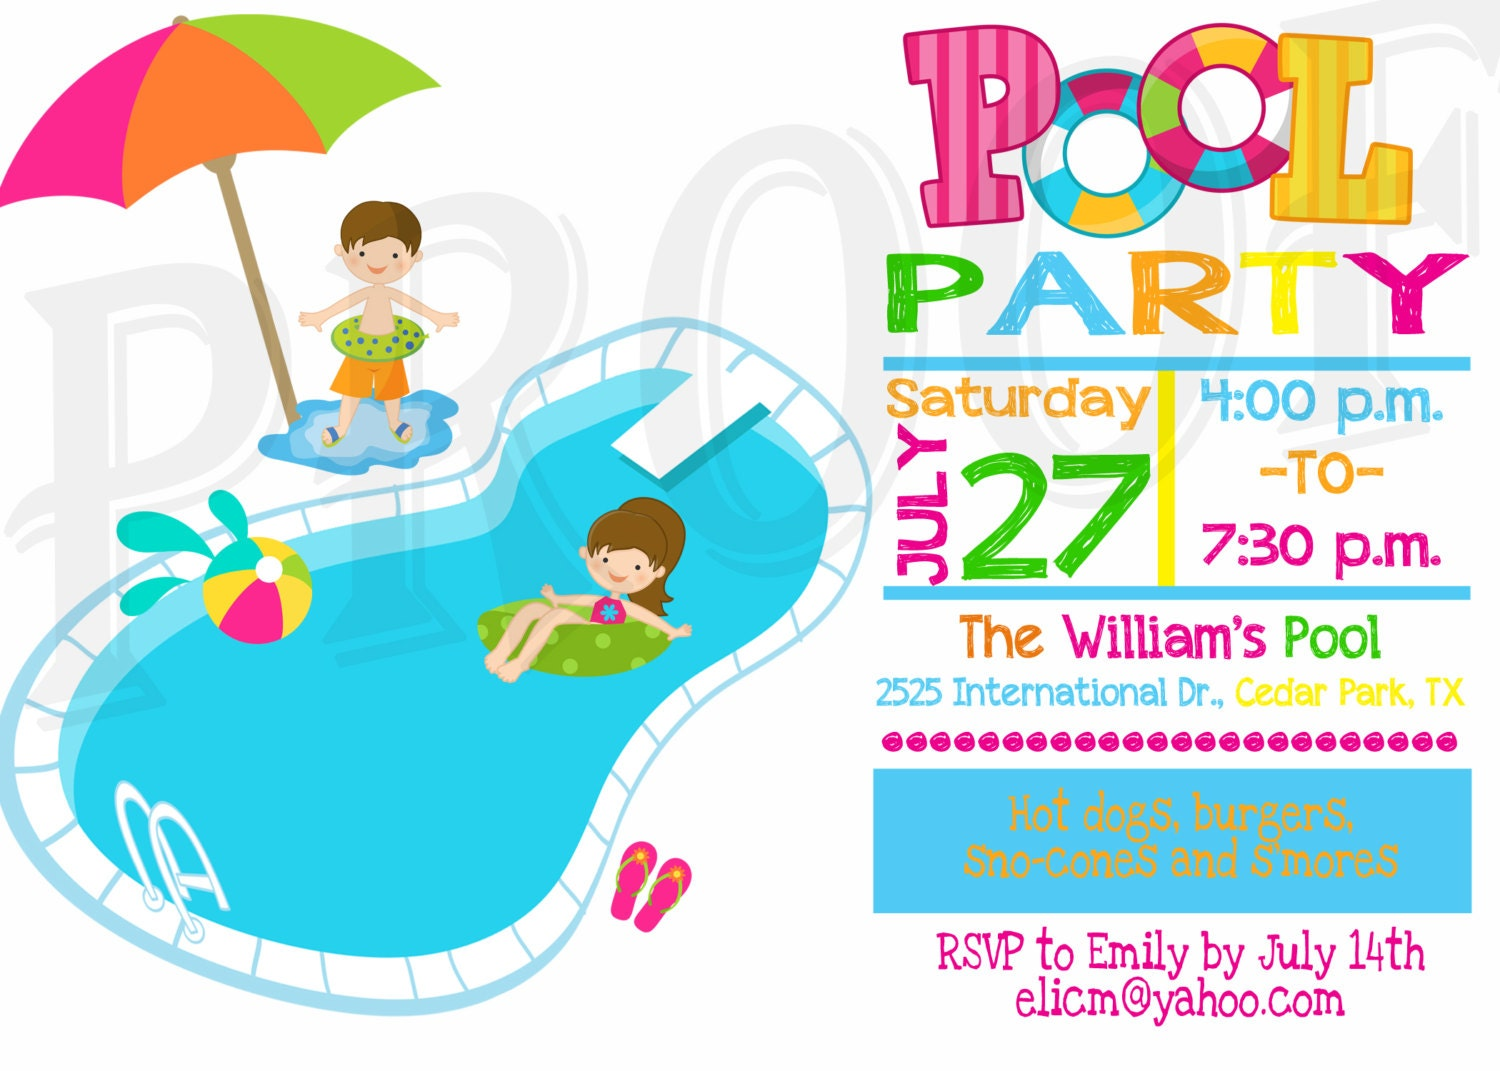 Kids pool party invitation hatchurbanskript kids pool party invitation stopboris Images